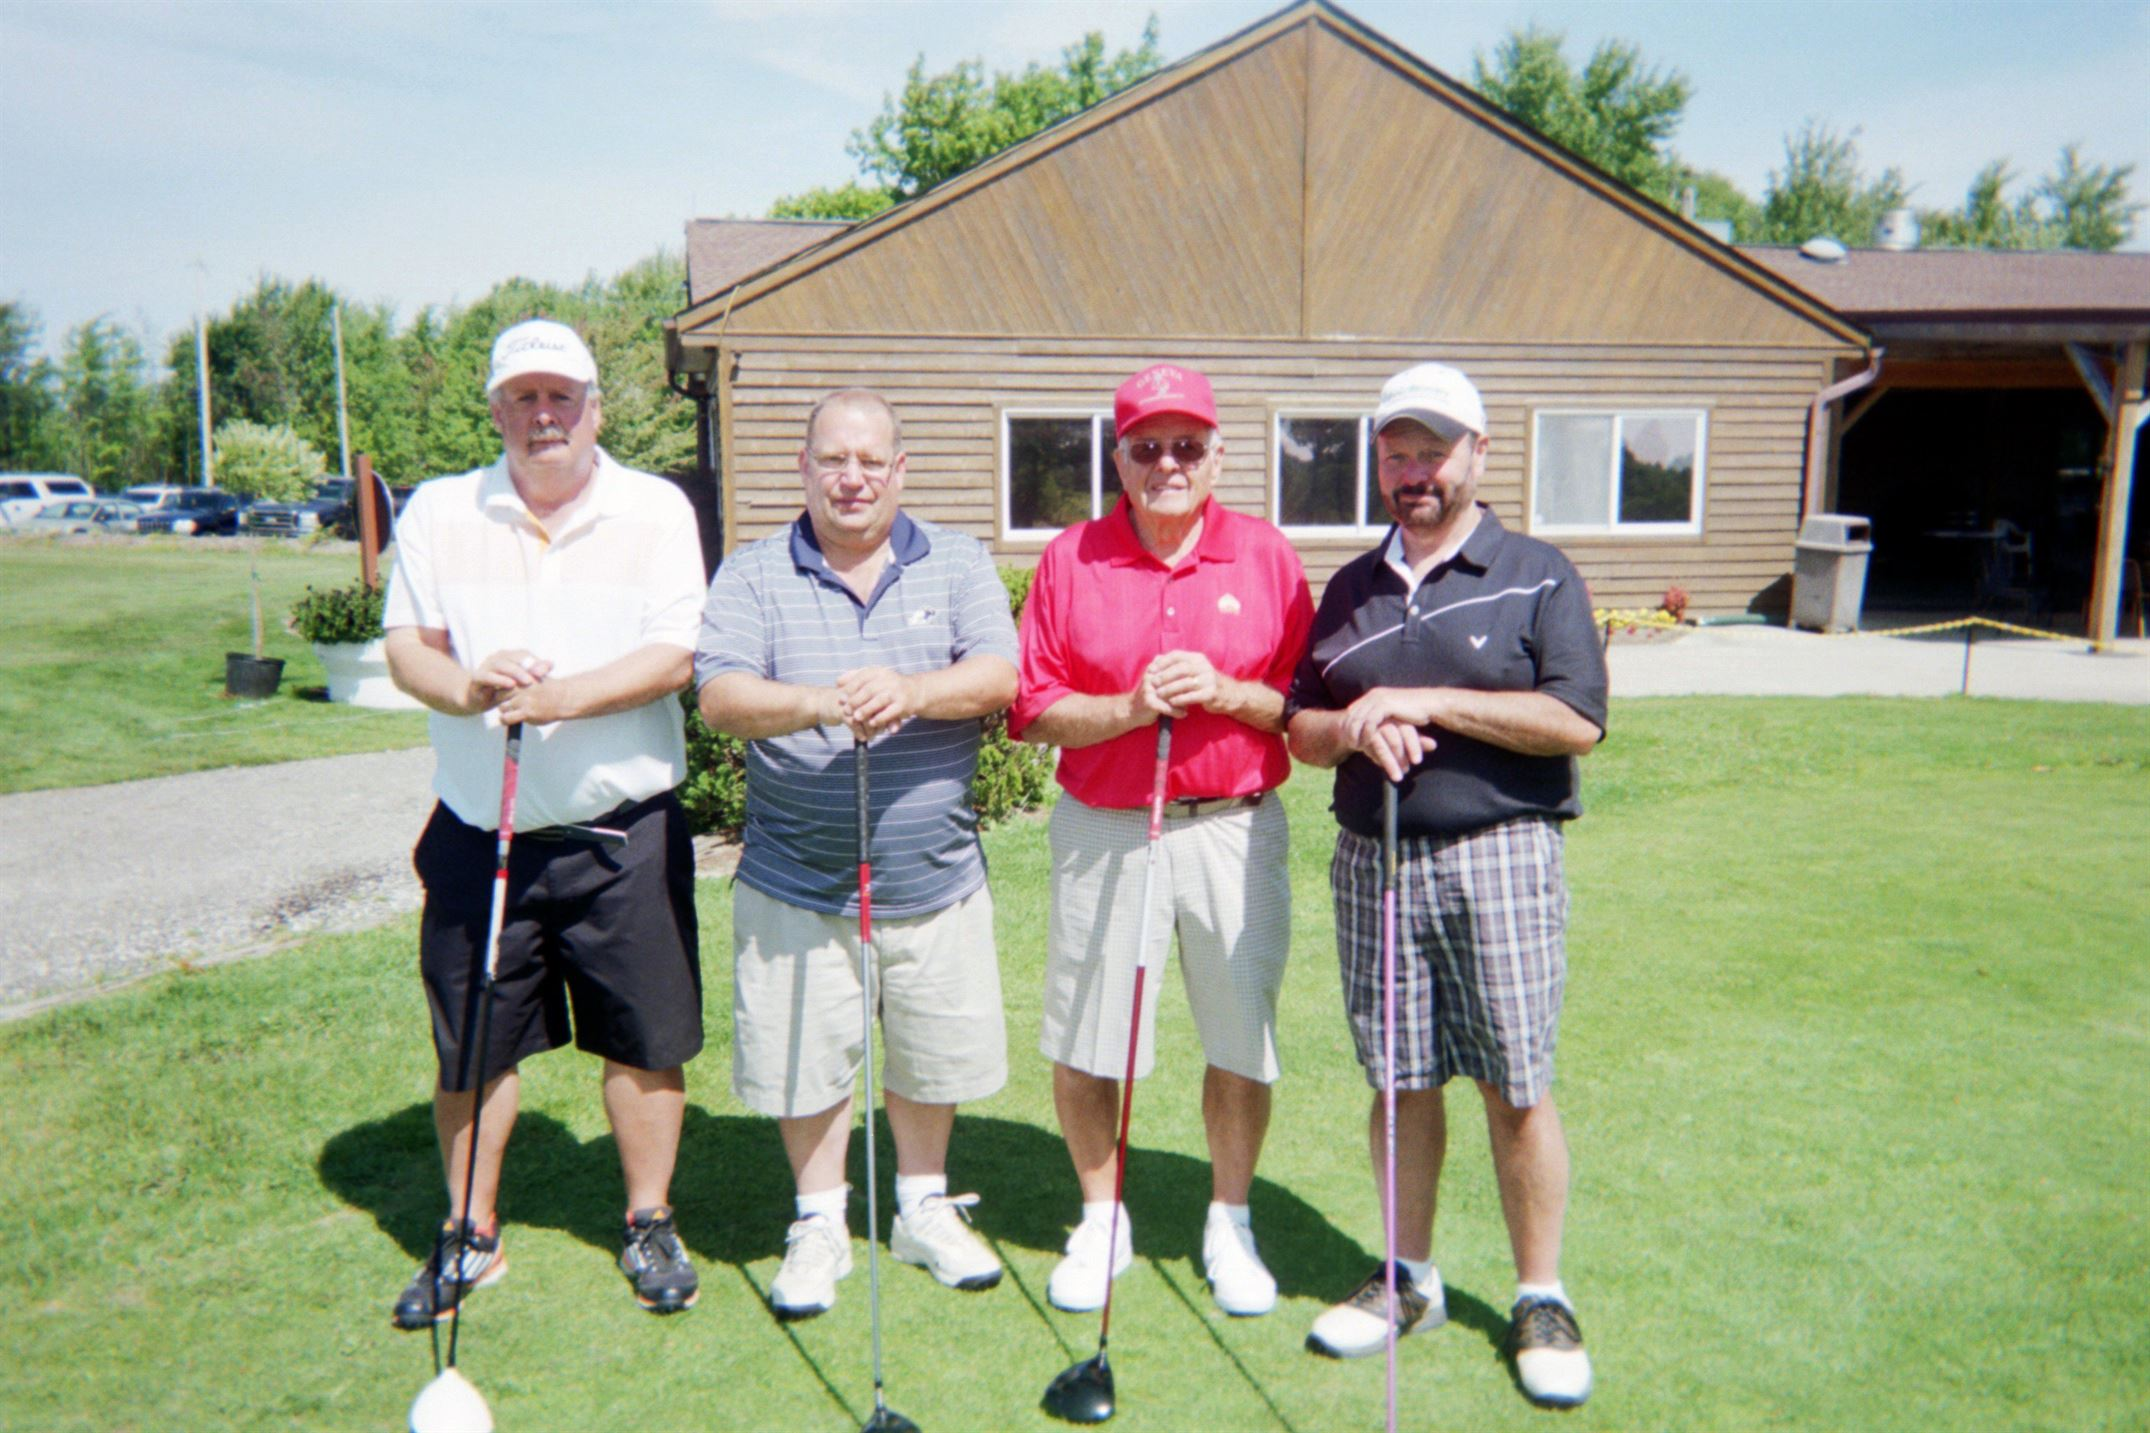 Jeff Starkey, Doug Starkey, Russ Starkey, George Distler